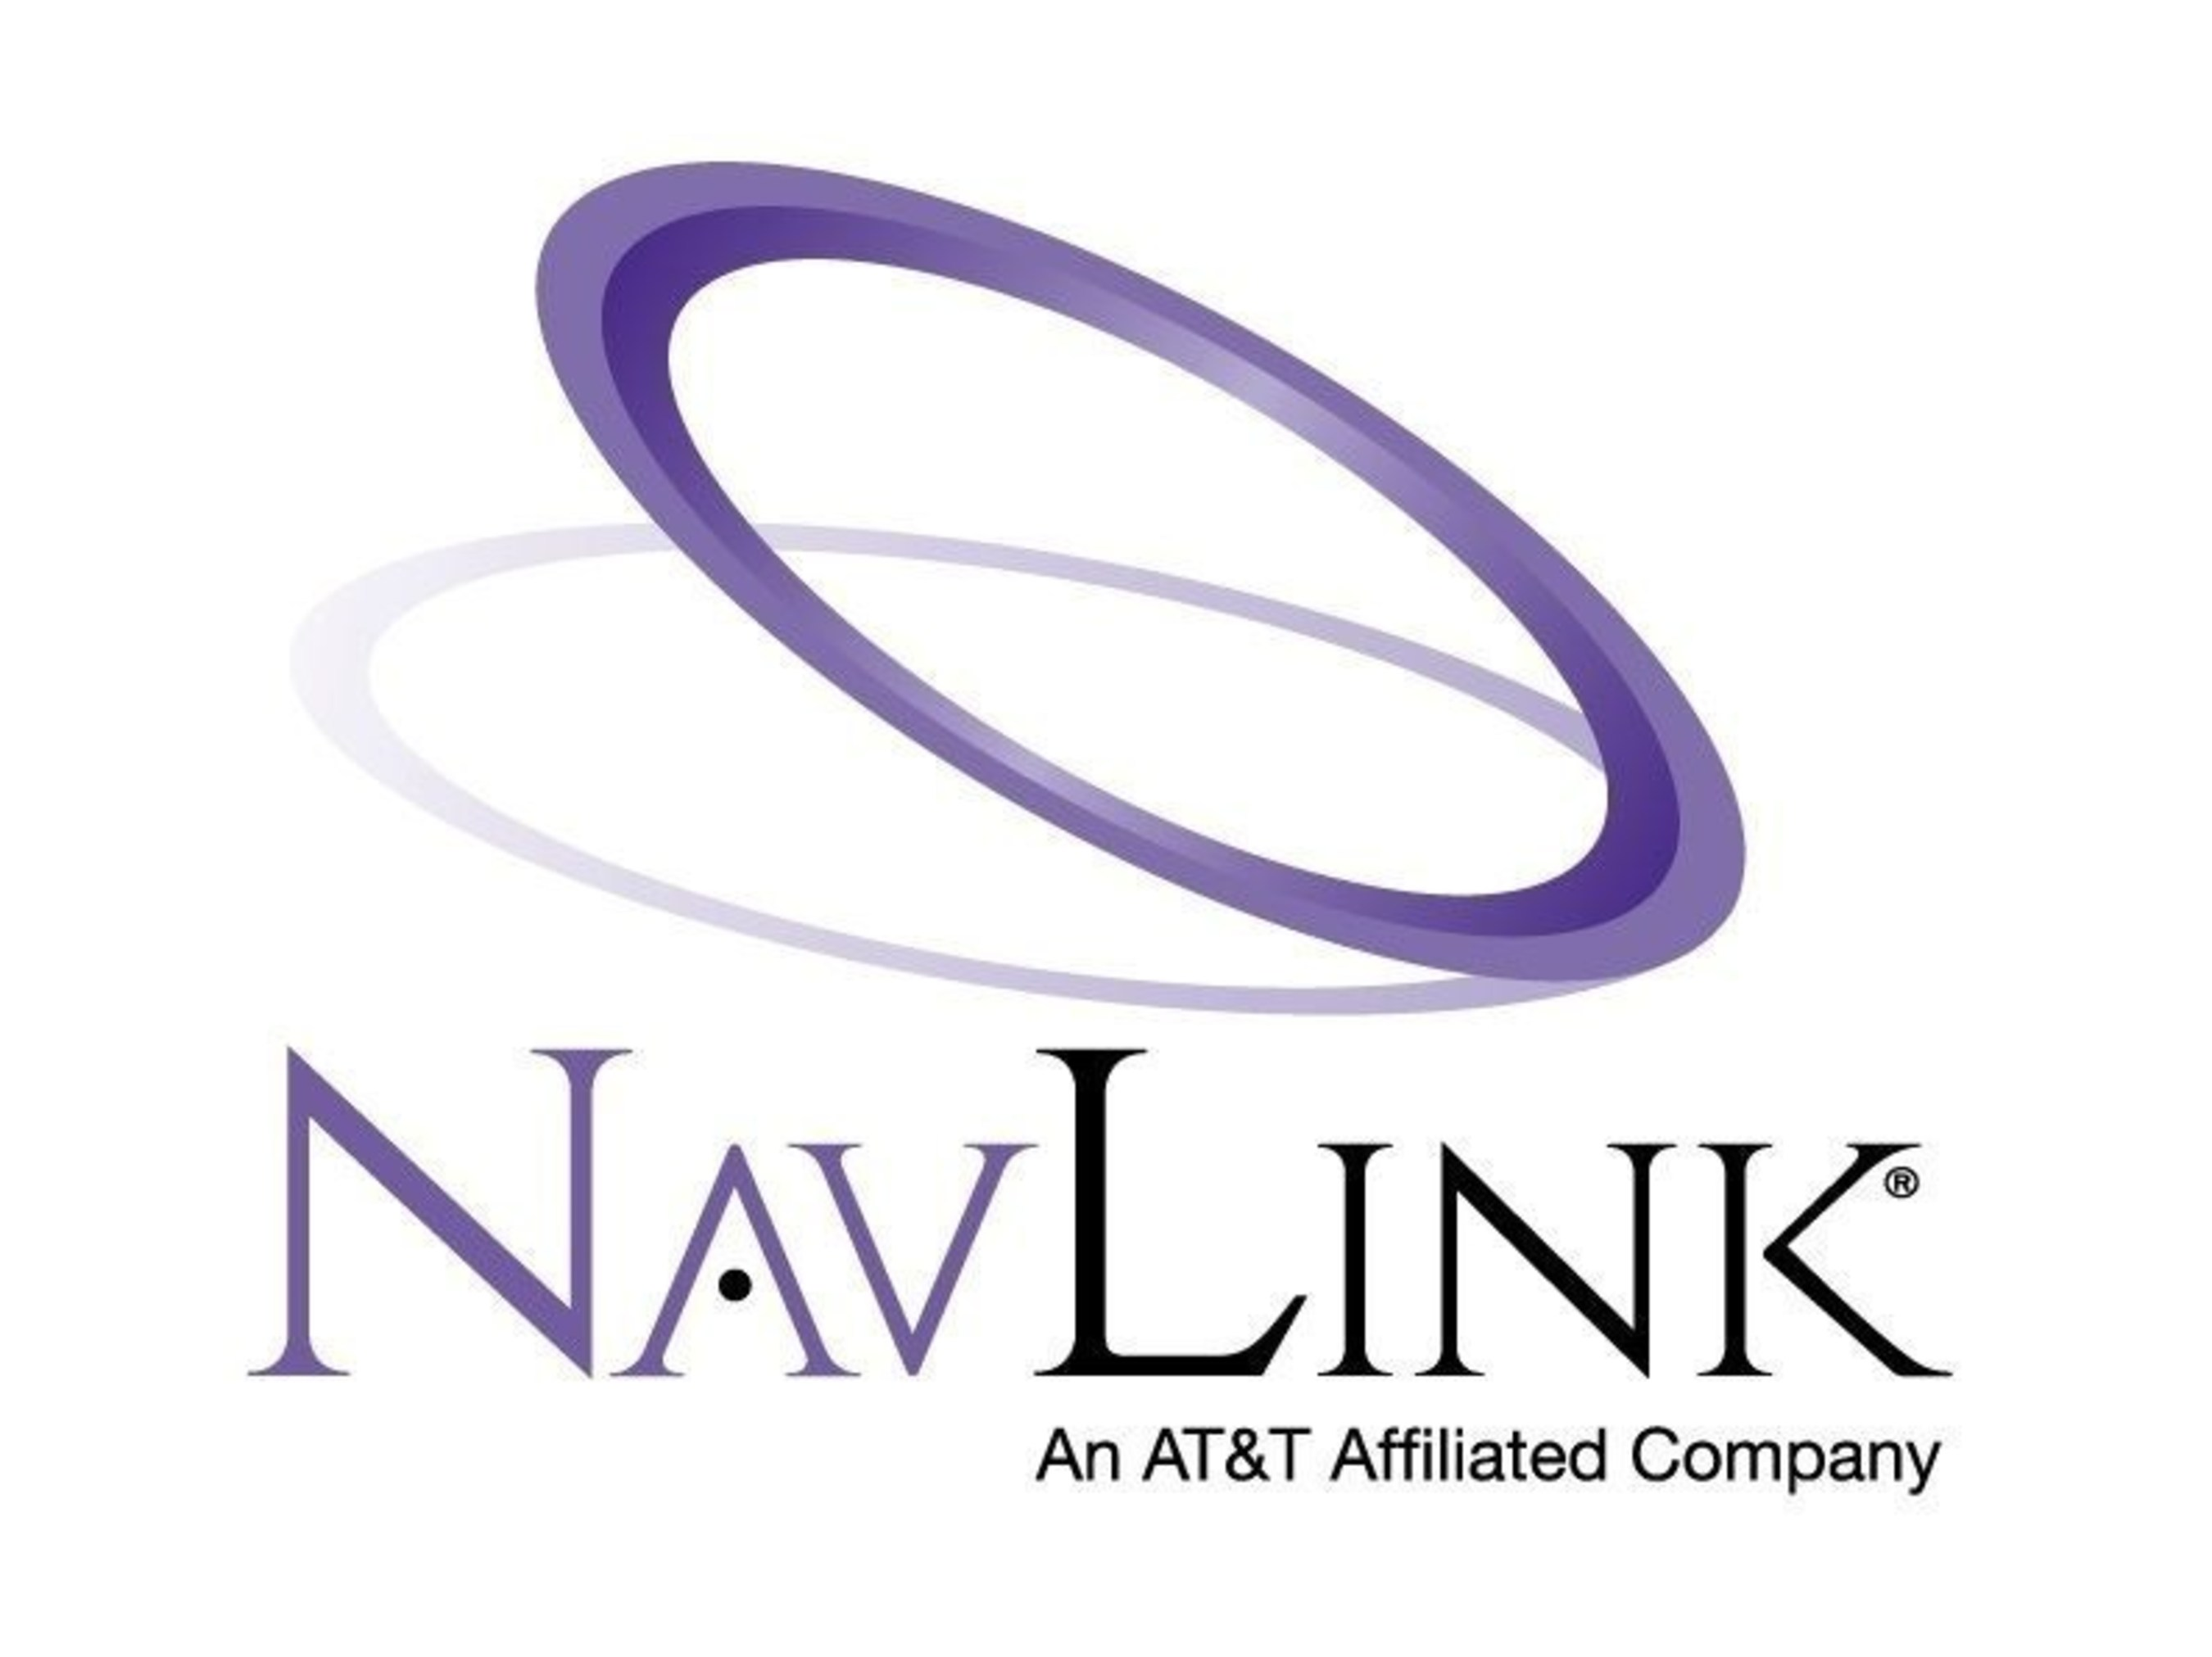 NavLink, an AT&T Affiliated Company, Selects Asigra to Deliver Backup-as-a-Service to Telcos and Enterprises in Europe, Middle East and Africa (EMEA)